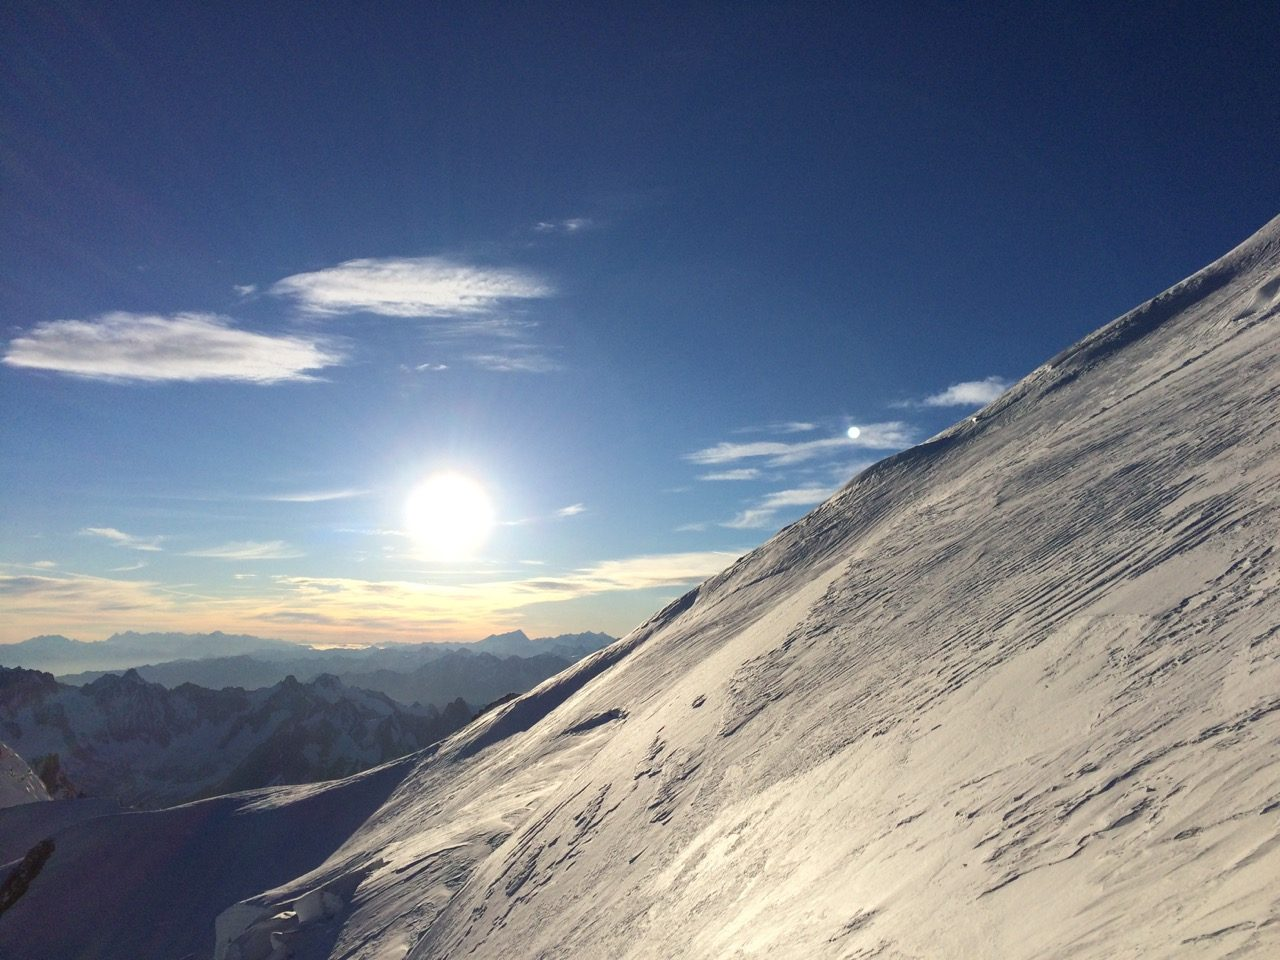 Part of a snowy mountain and the sun in the background, Mont Blanc_Snowy Mountain_Mountaineering_Landscape, adidas, GamePlan A, Marcus Leach, Risk Taking